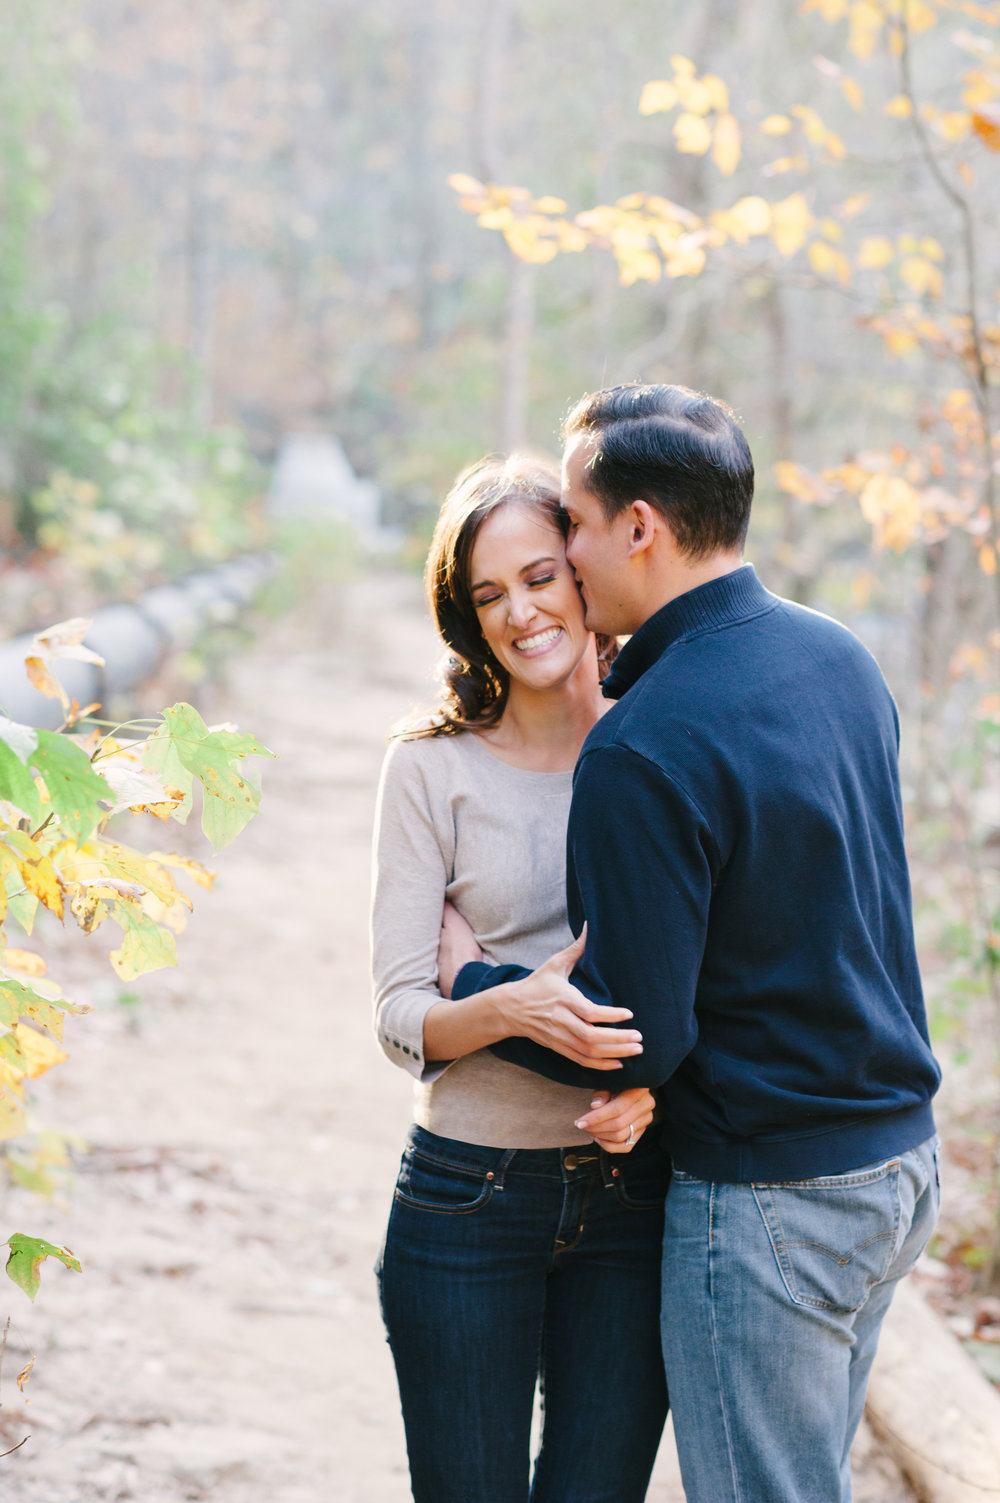 joyful engaged couple-1000.jpg